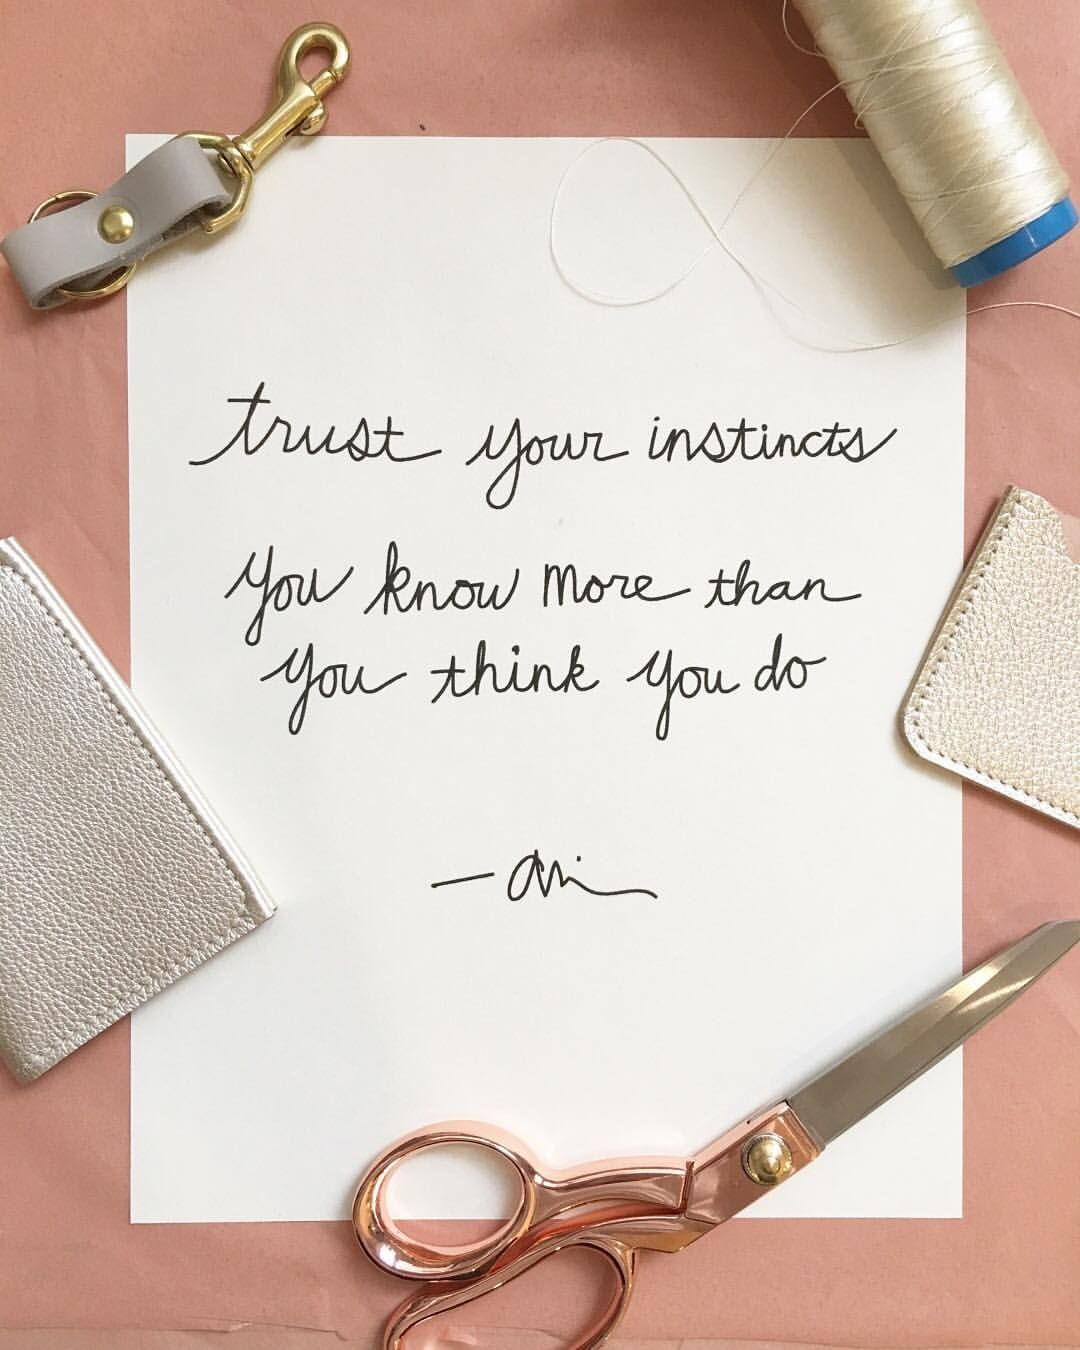 "485 Likes, 7 Comments - @etsy on Instagram: """"Trust your instincts. You know more than you think you do."" We're feeling this quote from Etsy…"""